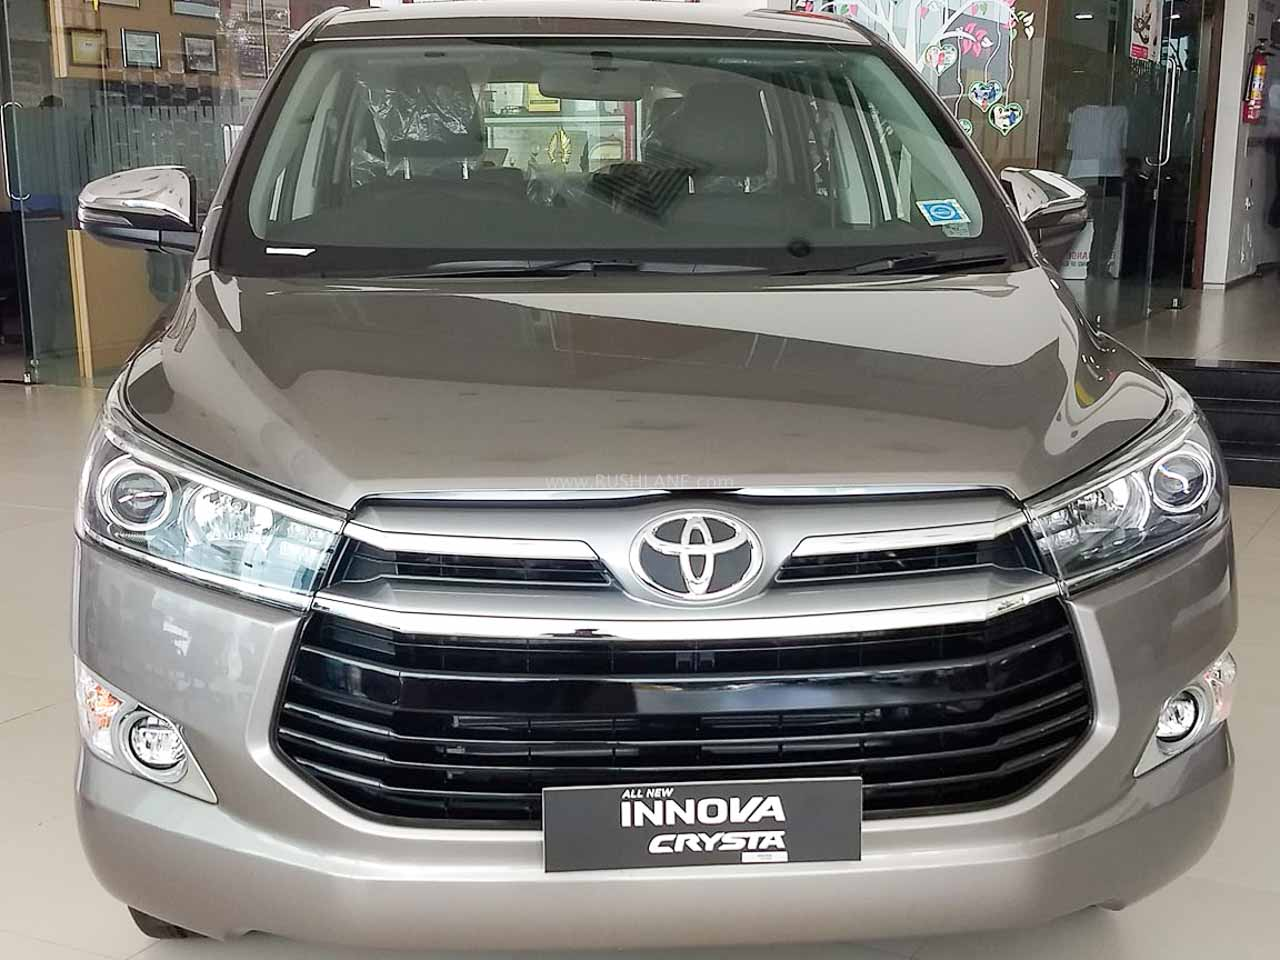 Toyota Innova Crysta, Fortuner help increase company sales in June 2020